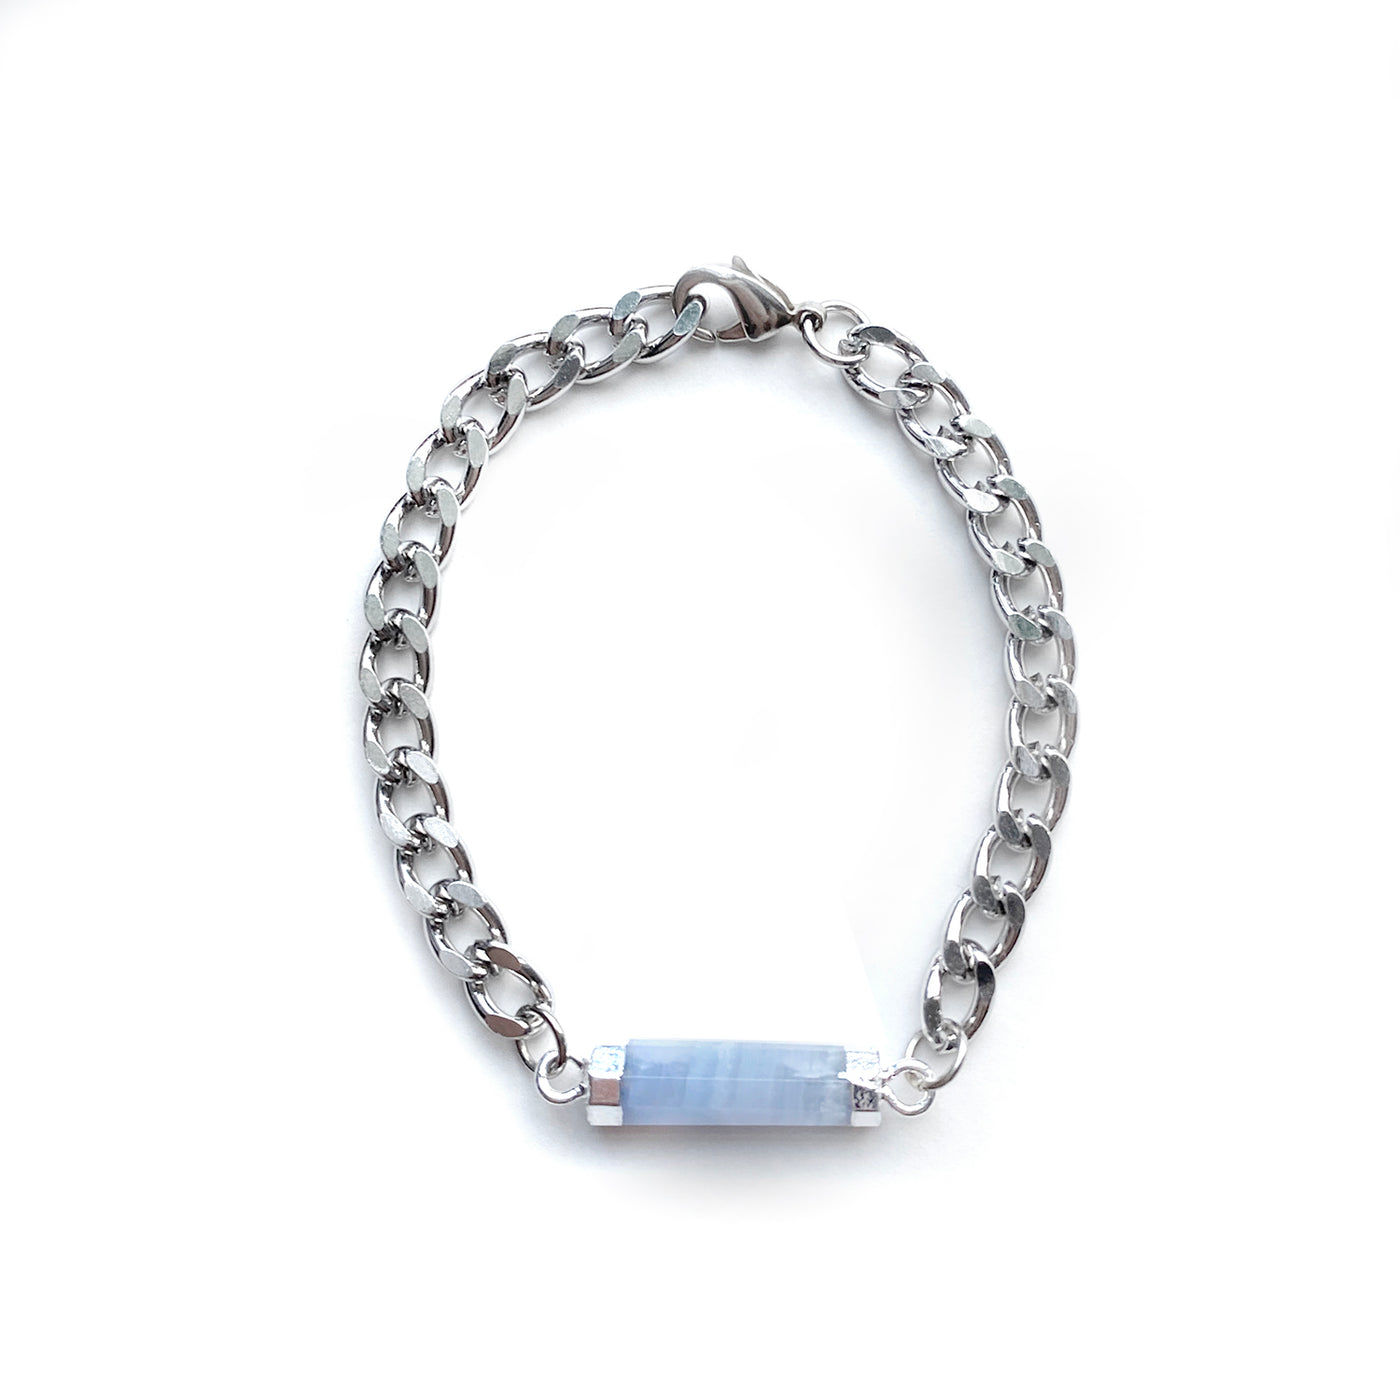 Blue Lace Agate Silver Bracelet - Chainless Brain